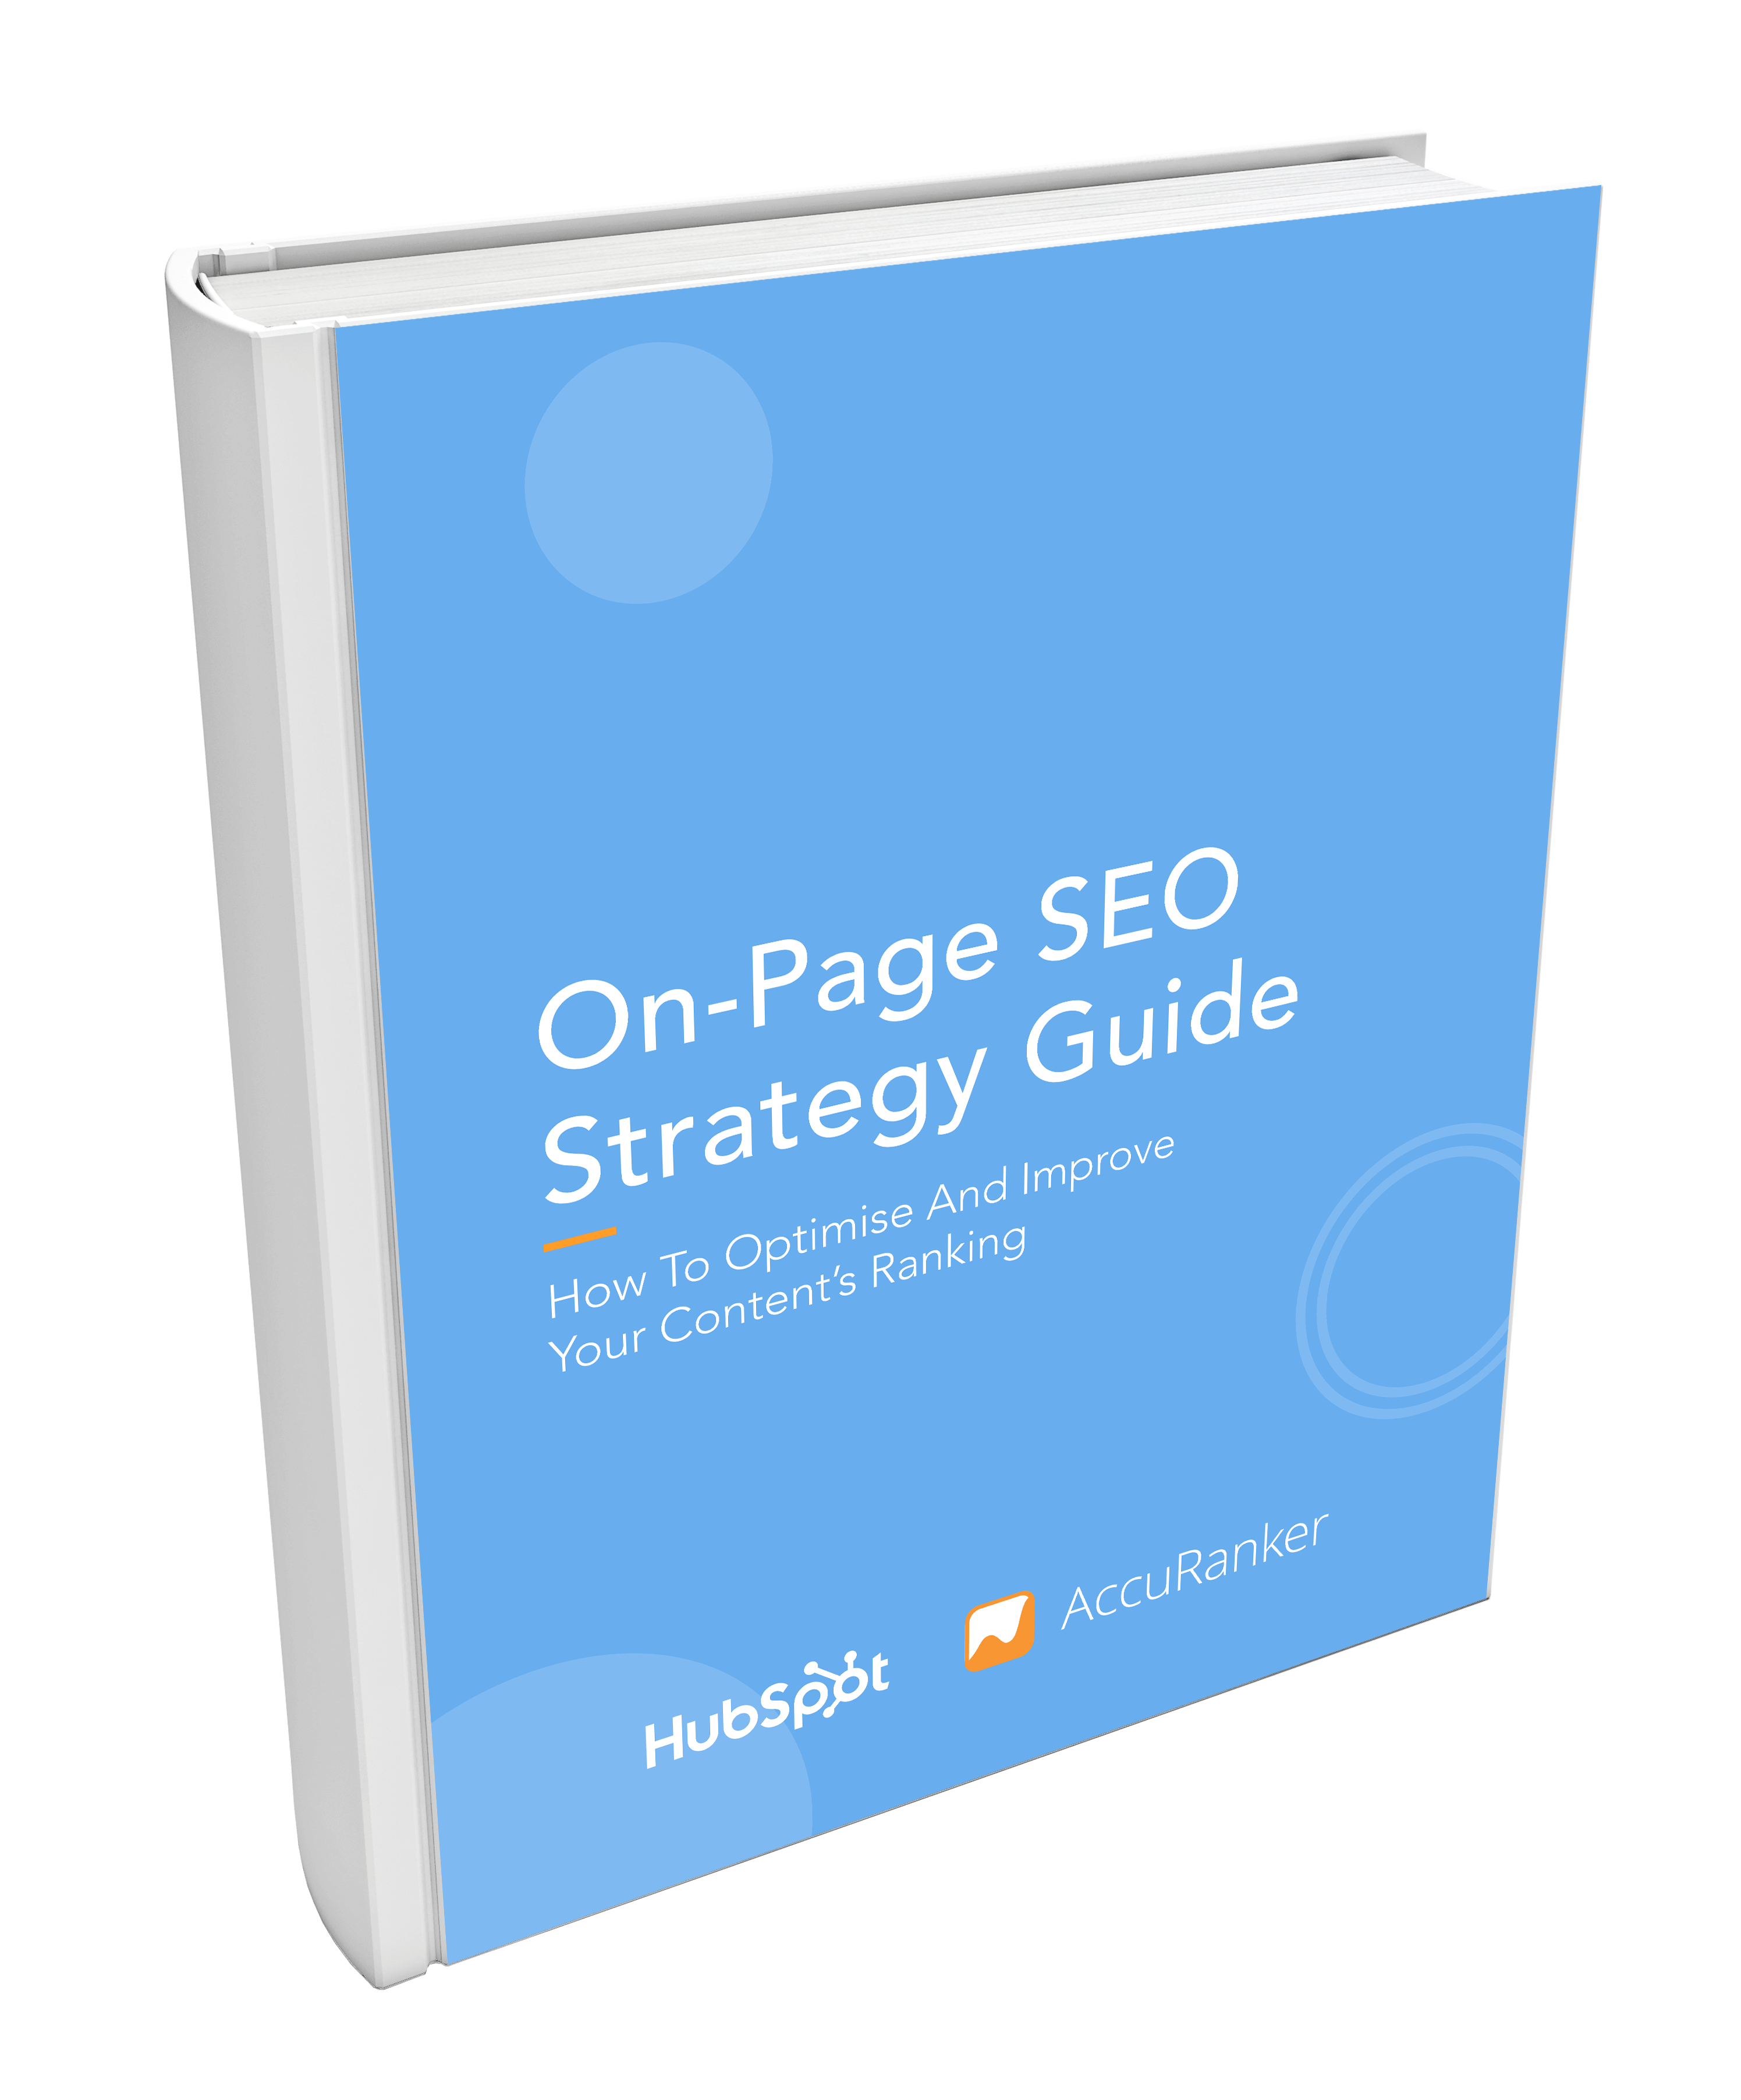 On-Page SEO Strategy Guide